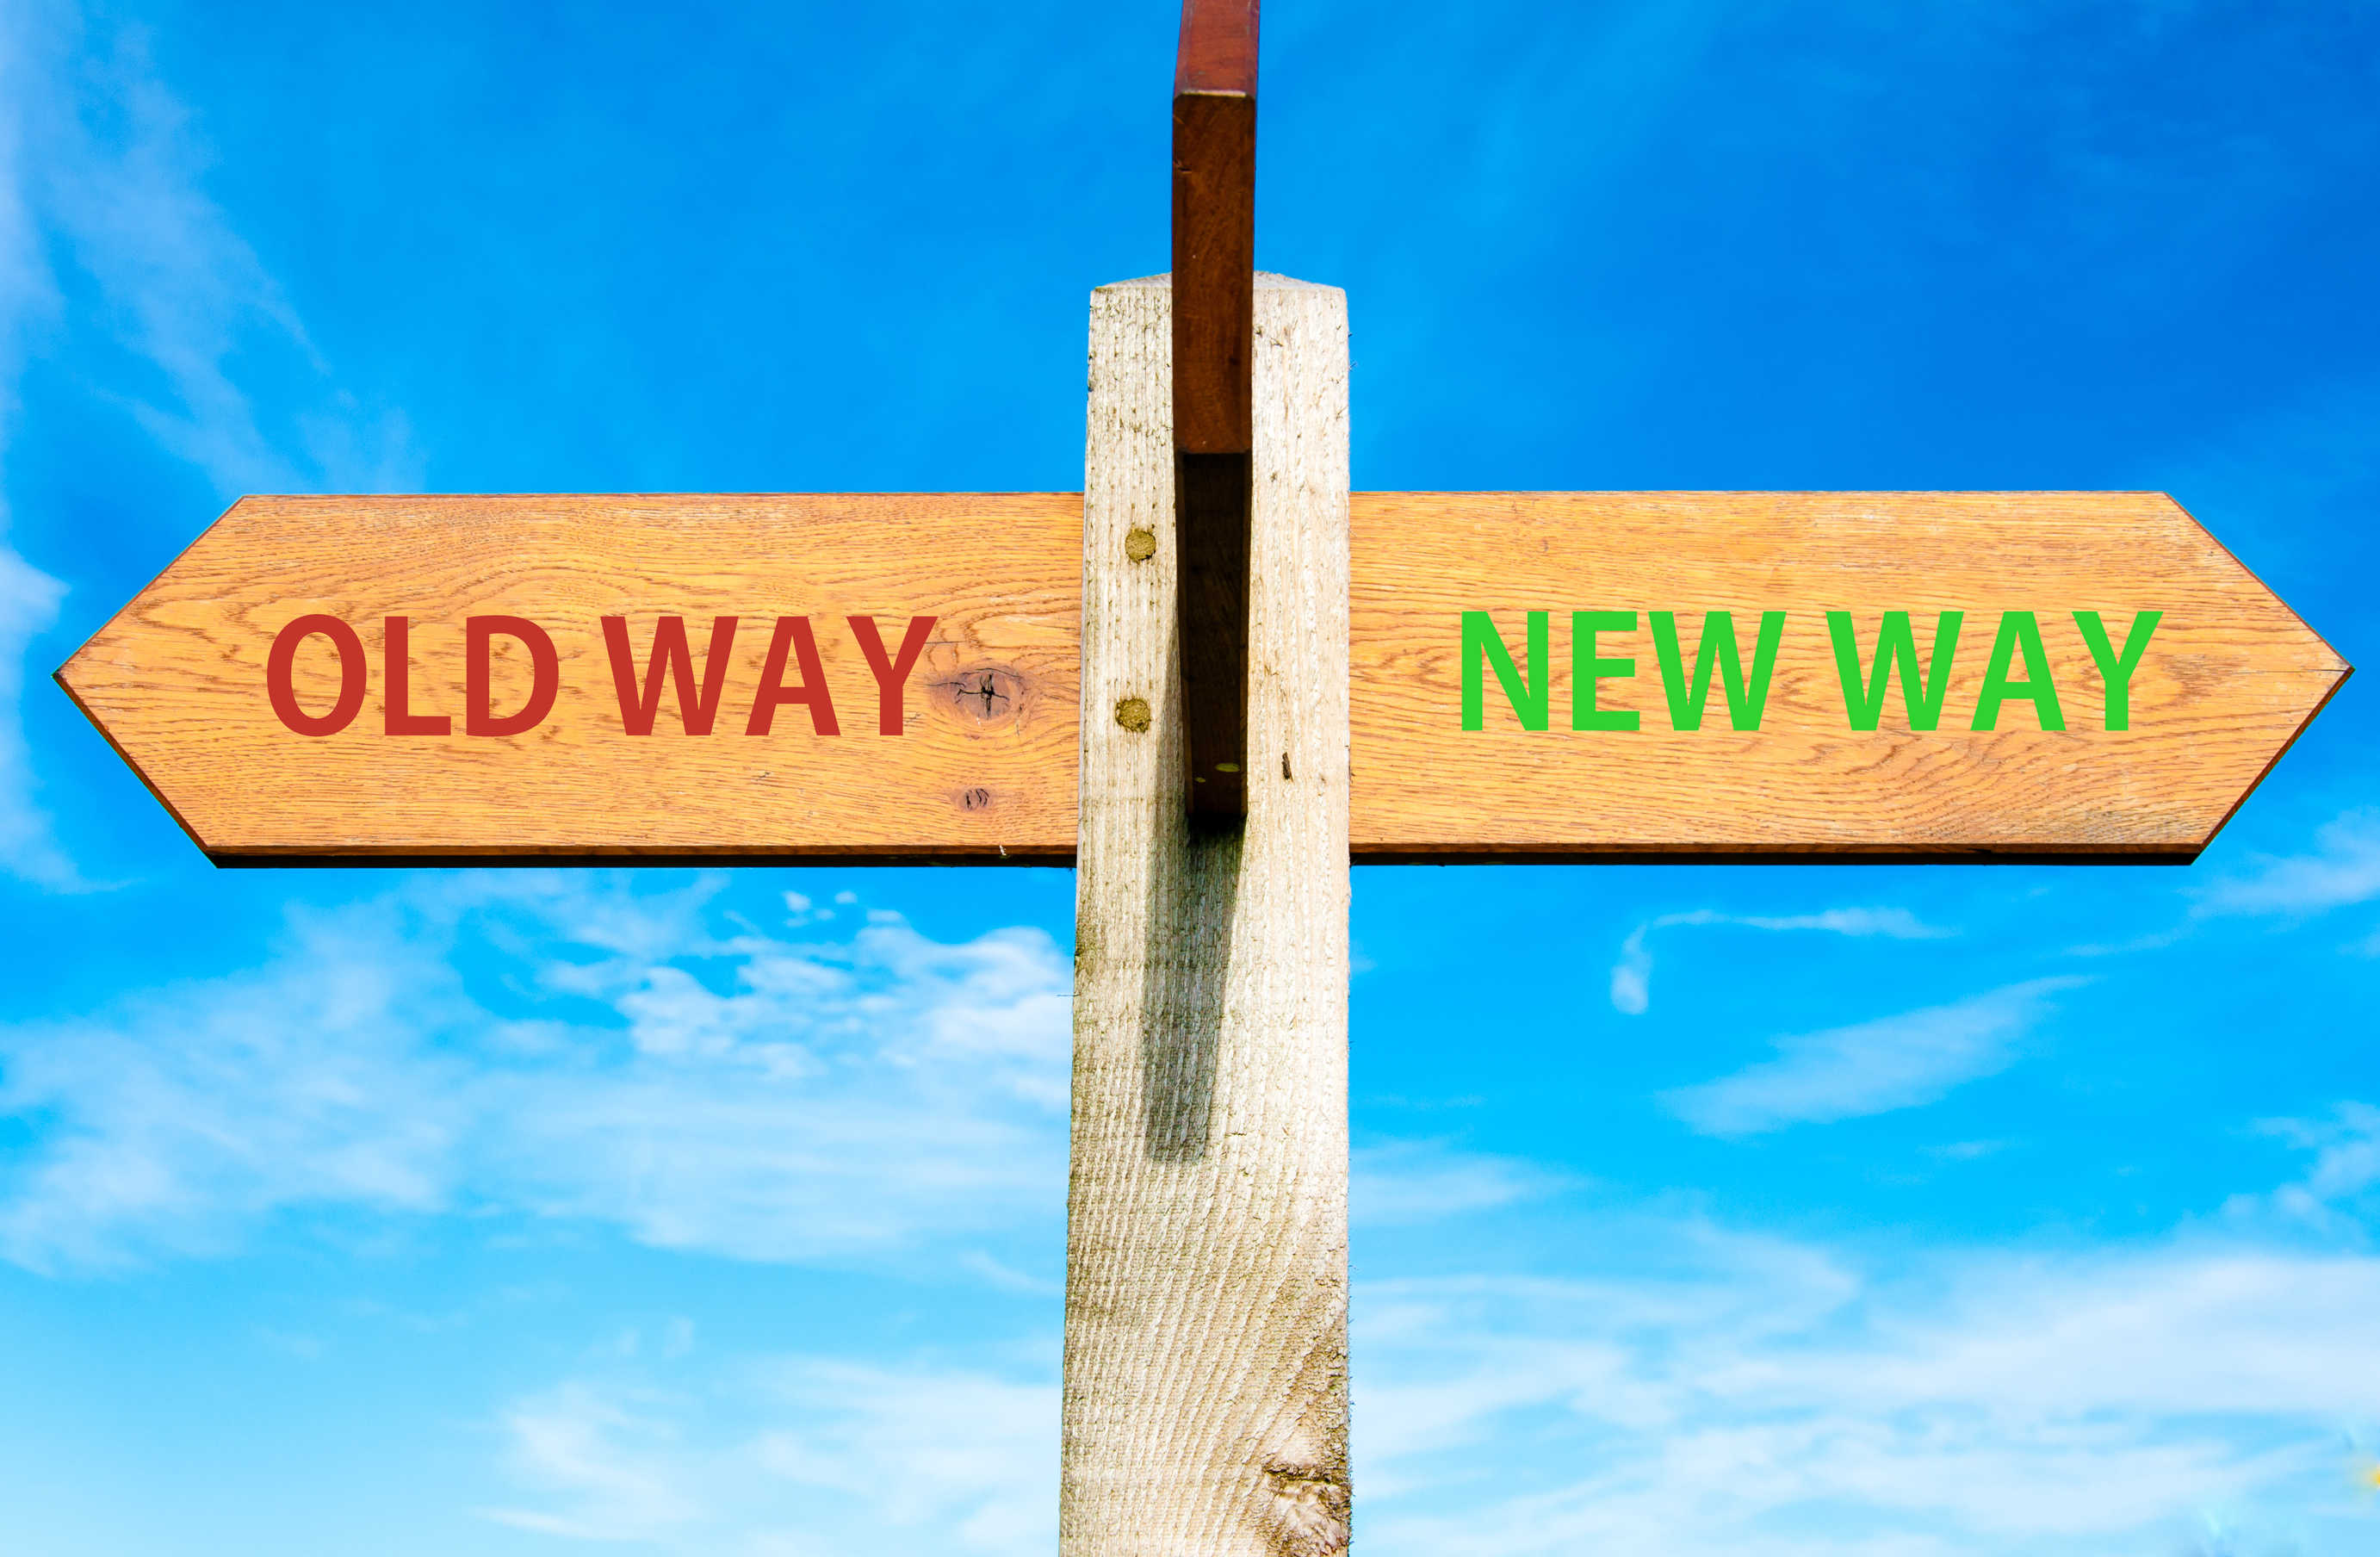 Old way-New way - ID 49033671 (c) Consta